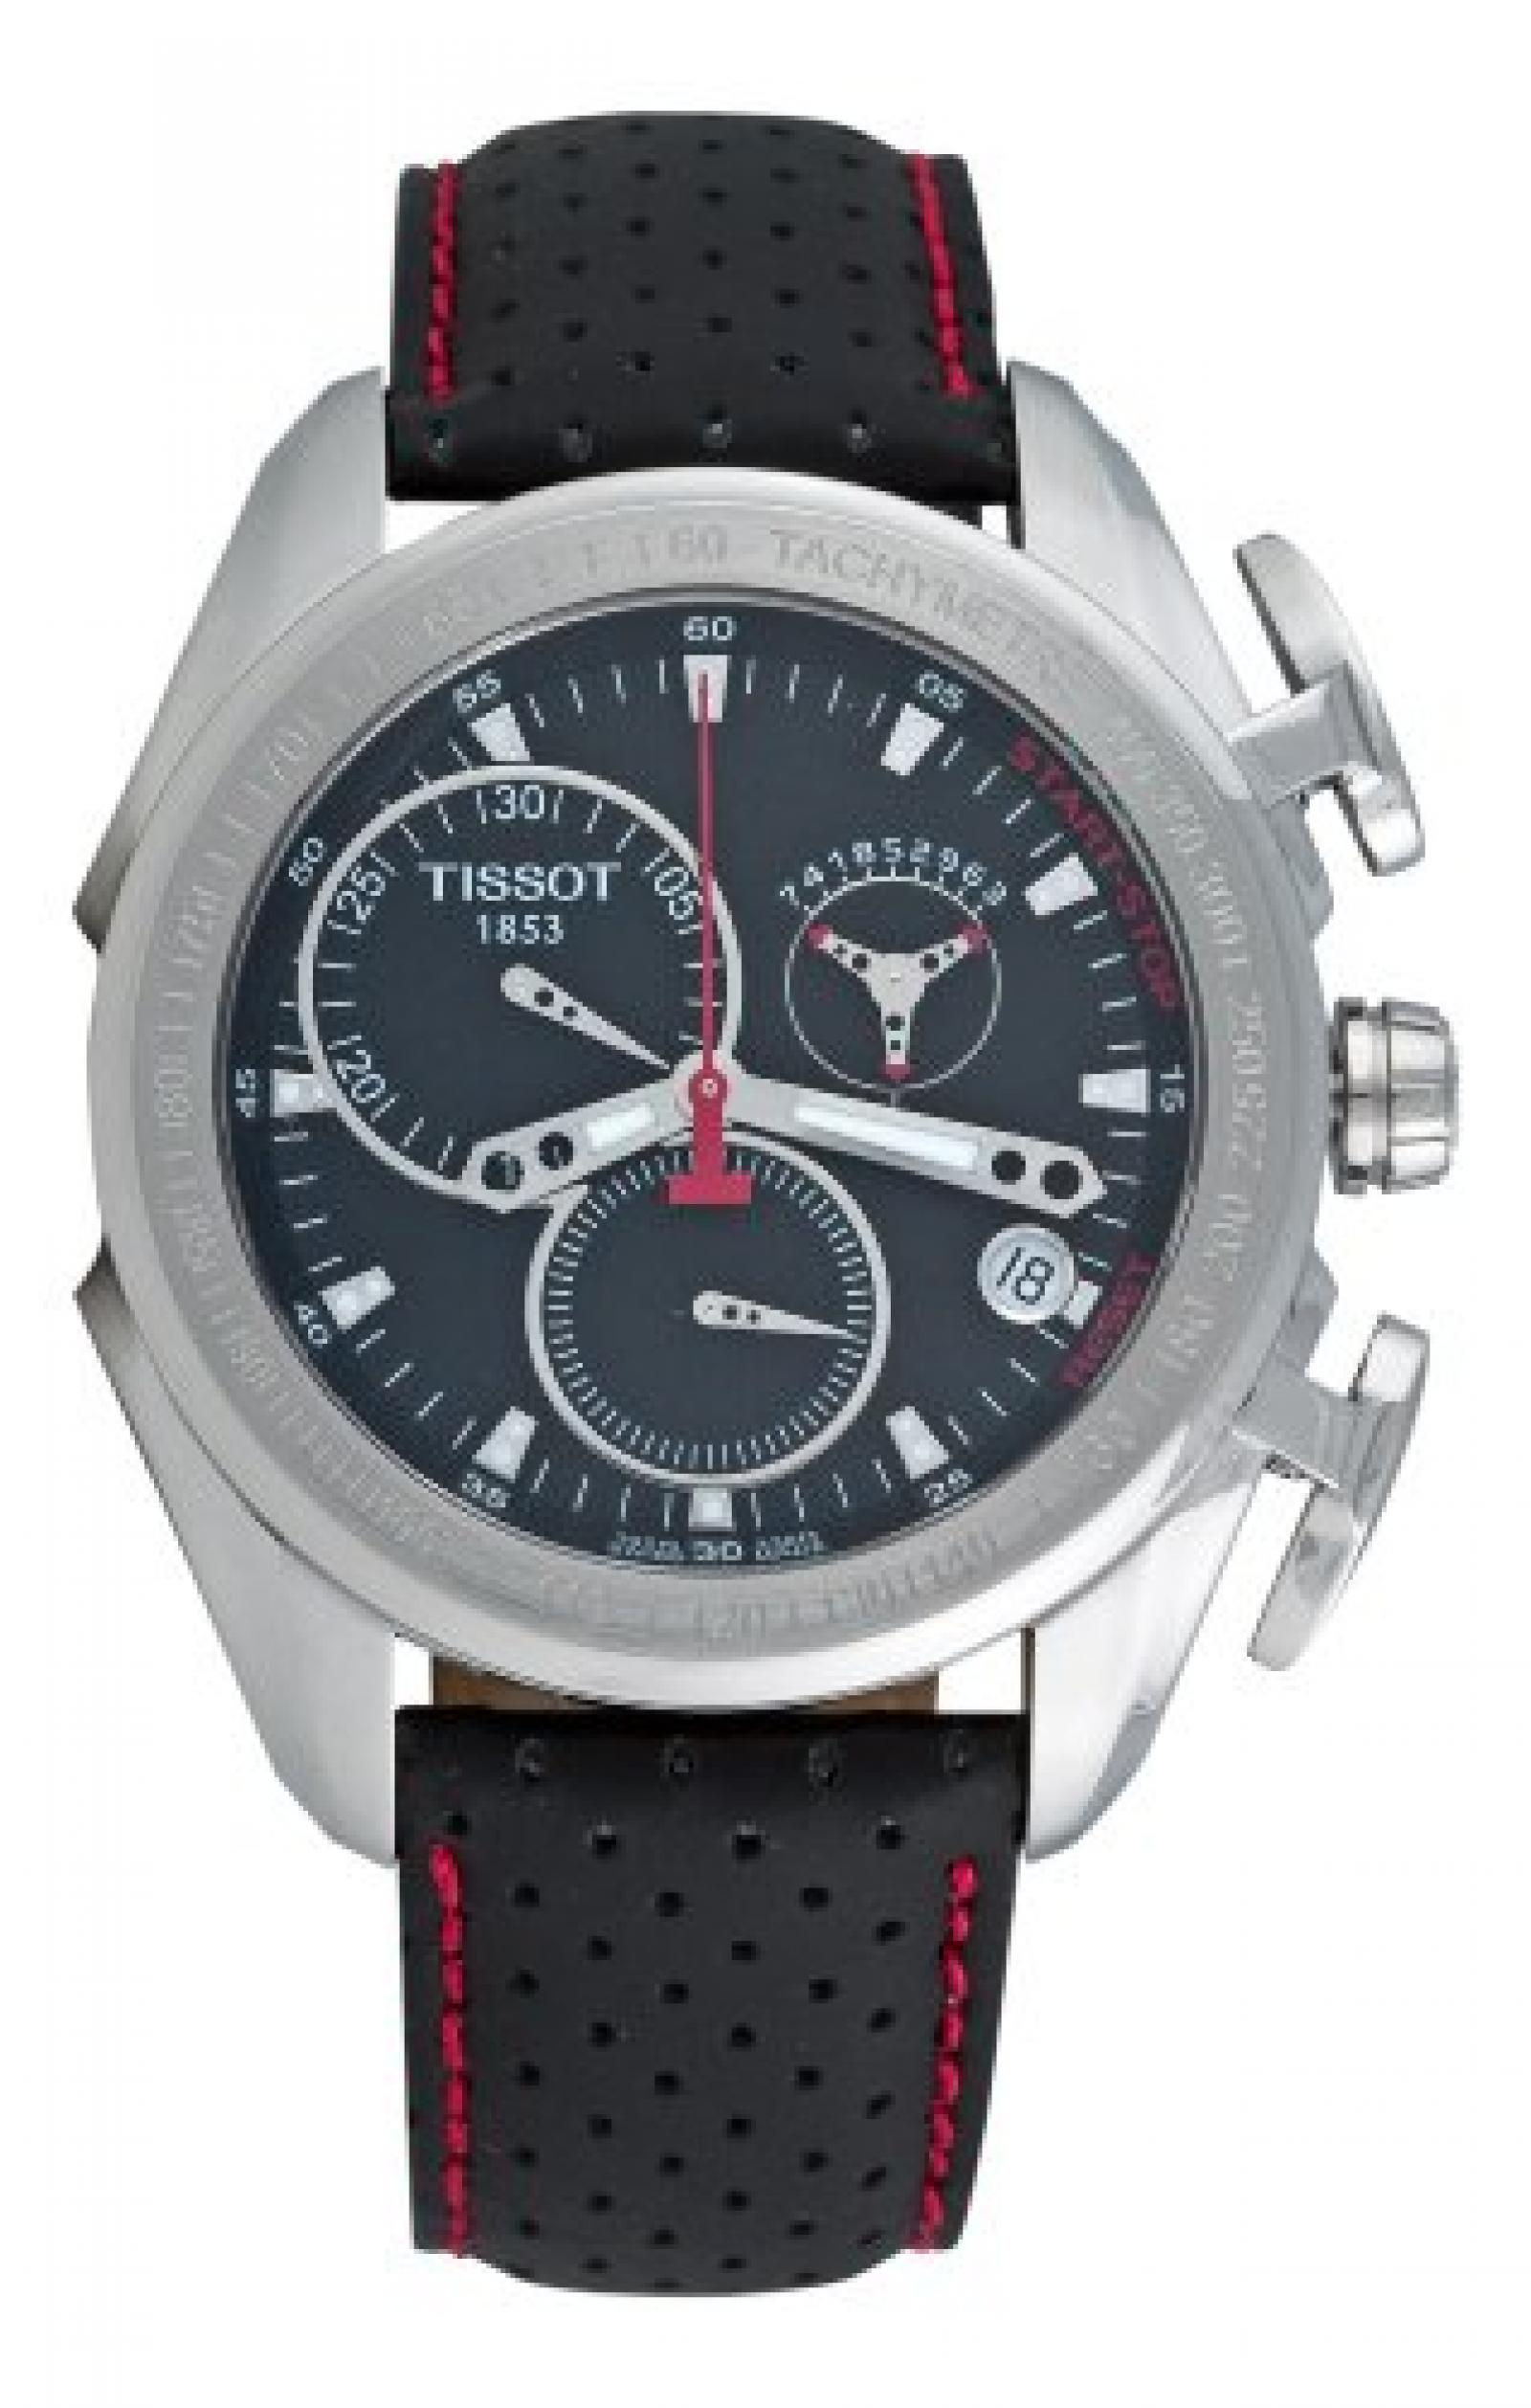 TISSOT Racing T018.617.16.051.00 Herrenuhr